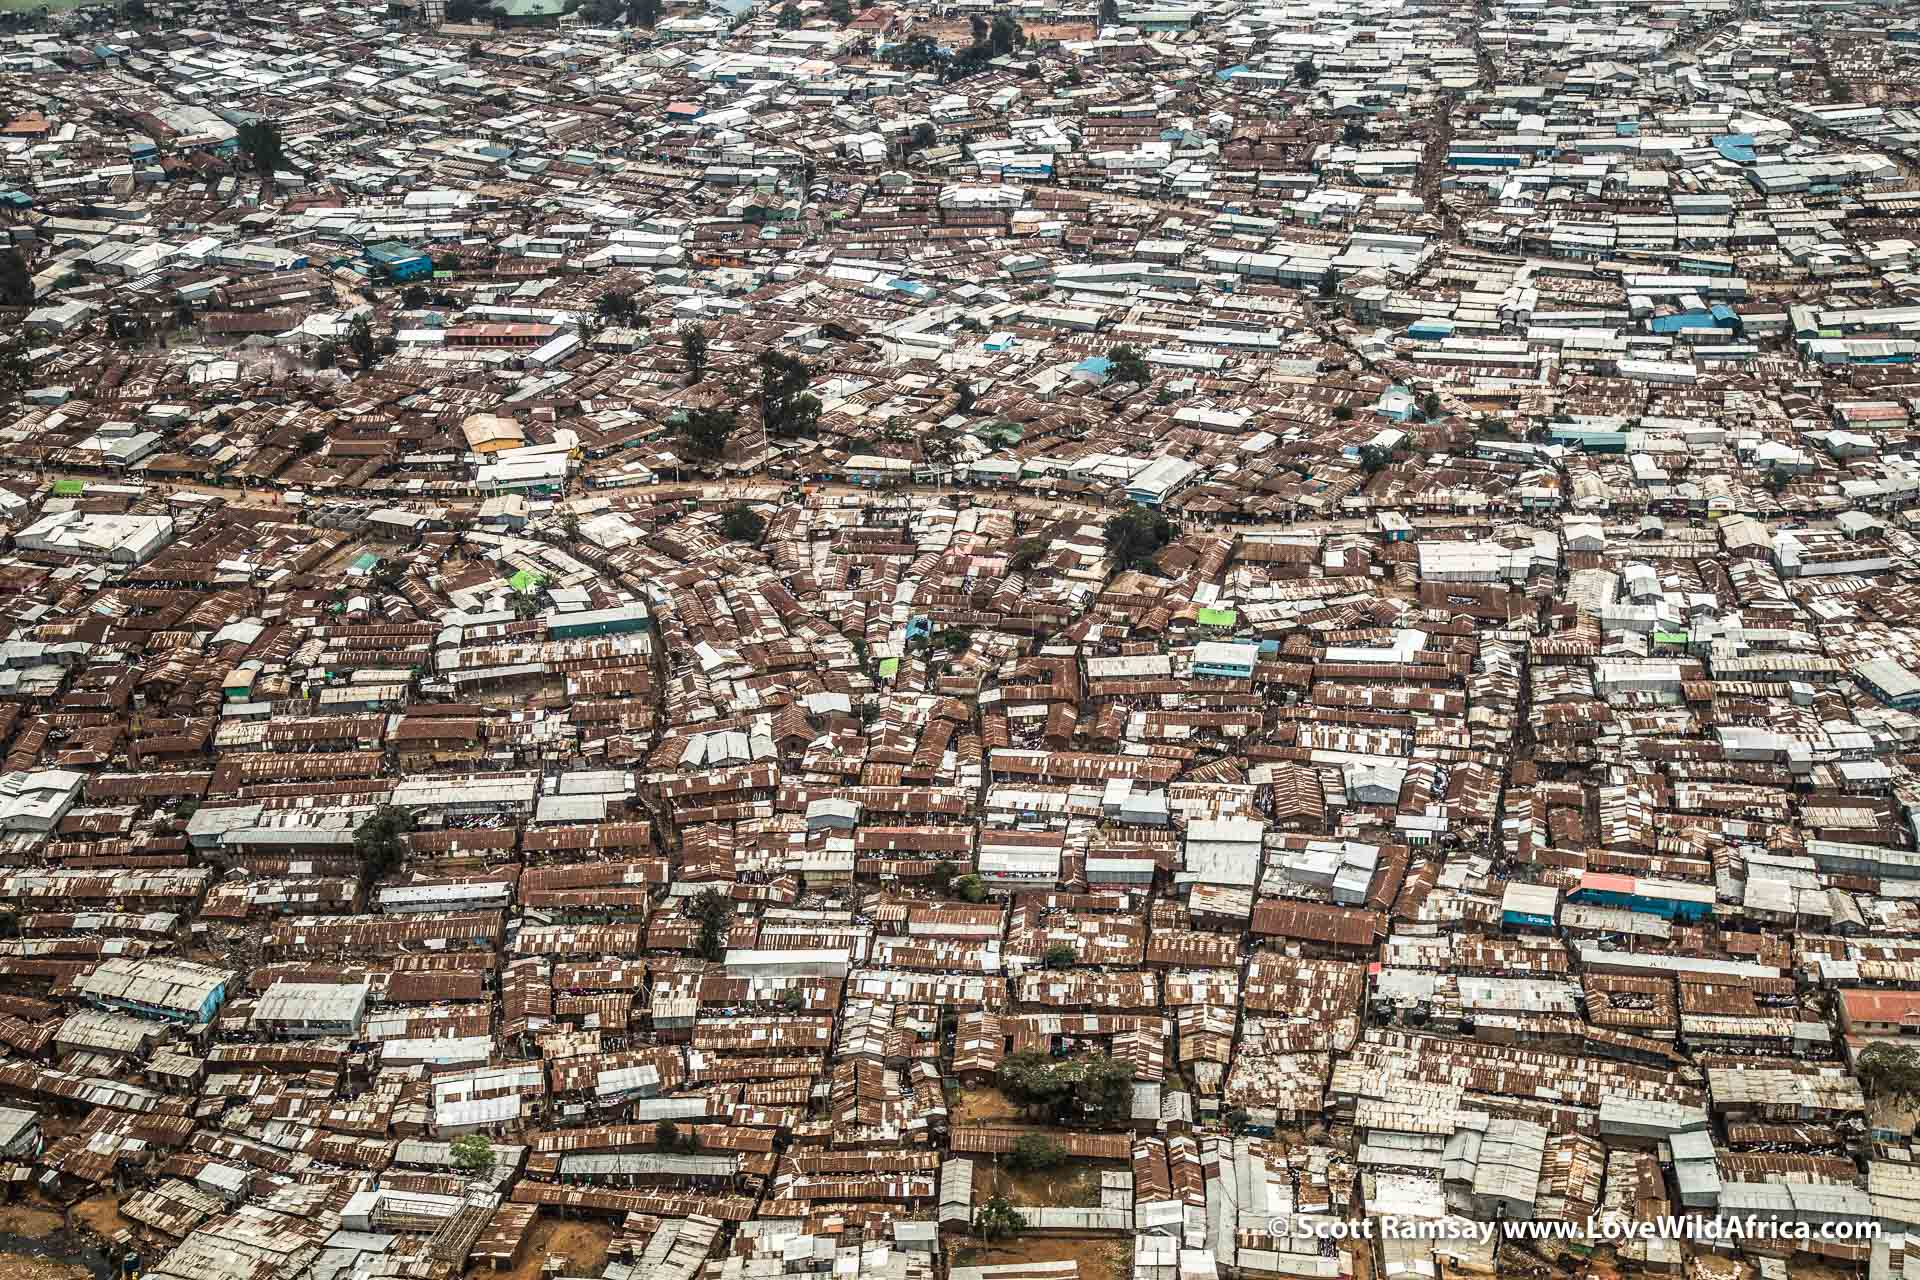 "This is one kind of Kenya. Flying from Nairobi to Laikipia, we passed over Kibera, the largst ""slum"" in Kenya's capital, about 7 kilometres from the city centre. About half a million people live here. Interestingly, while the highlands of Laikipia were leased out to World War I army officers, Kibera was originally allocated in the early 1900s by the colonial government to Nubian soldiers from Sudan who had served in the King's African Rifles, a regiment made up of African soldiers. Today the Kenyan government claims ownership of the land, and since 2009 has been trying to move people into highrise blocks elsewhere. By all accounts, it hasn't worked."